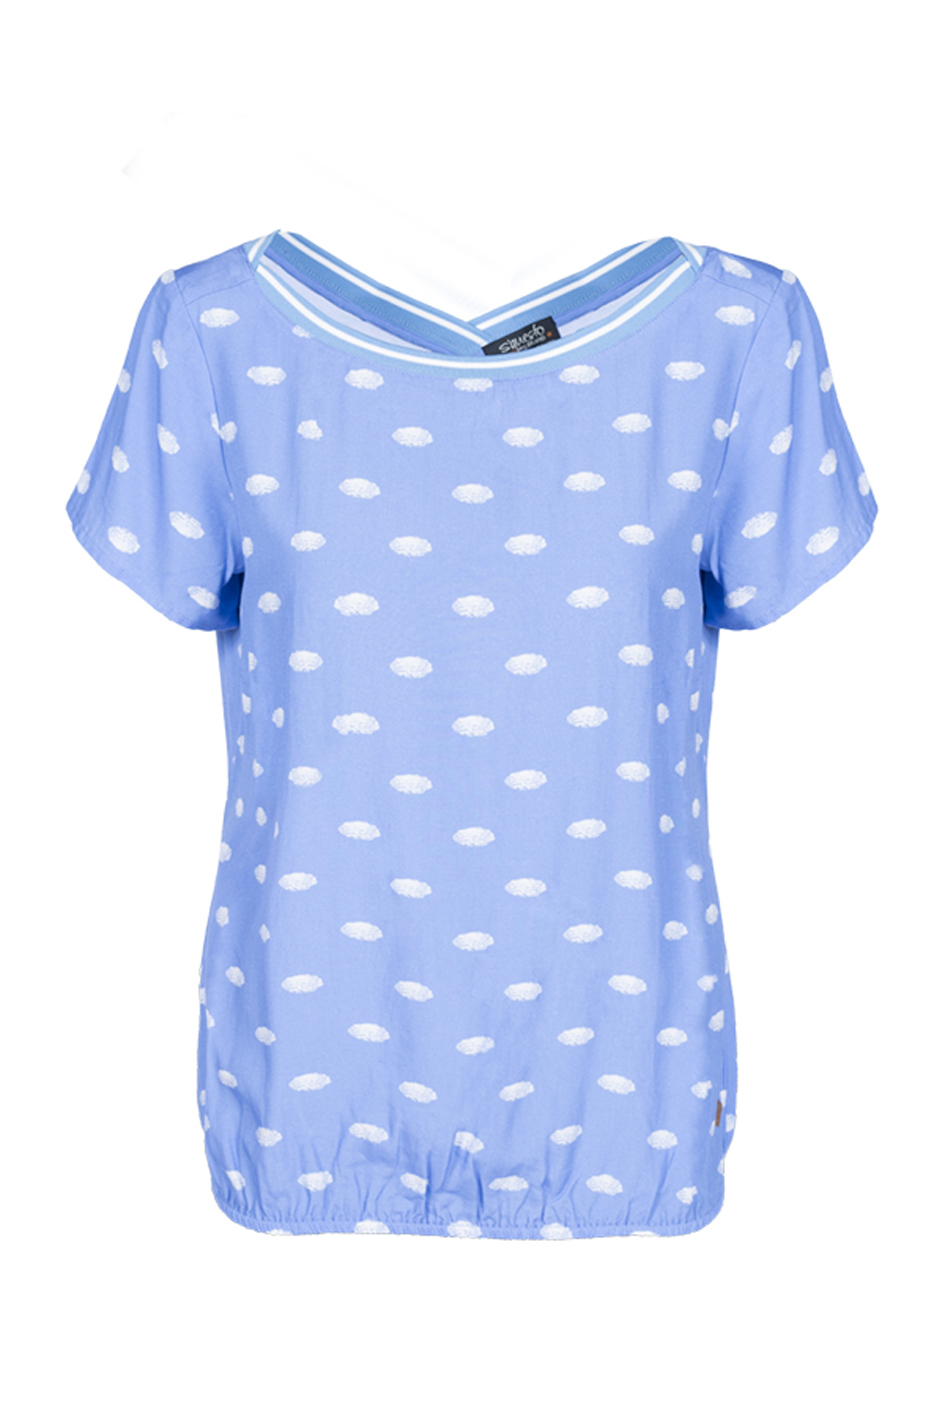 Soquesto Bluse Inday